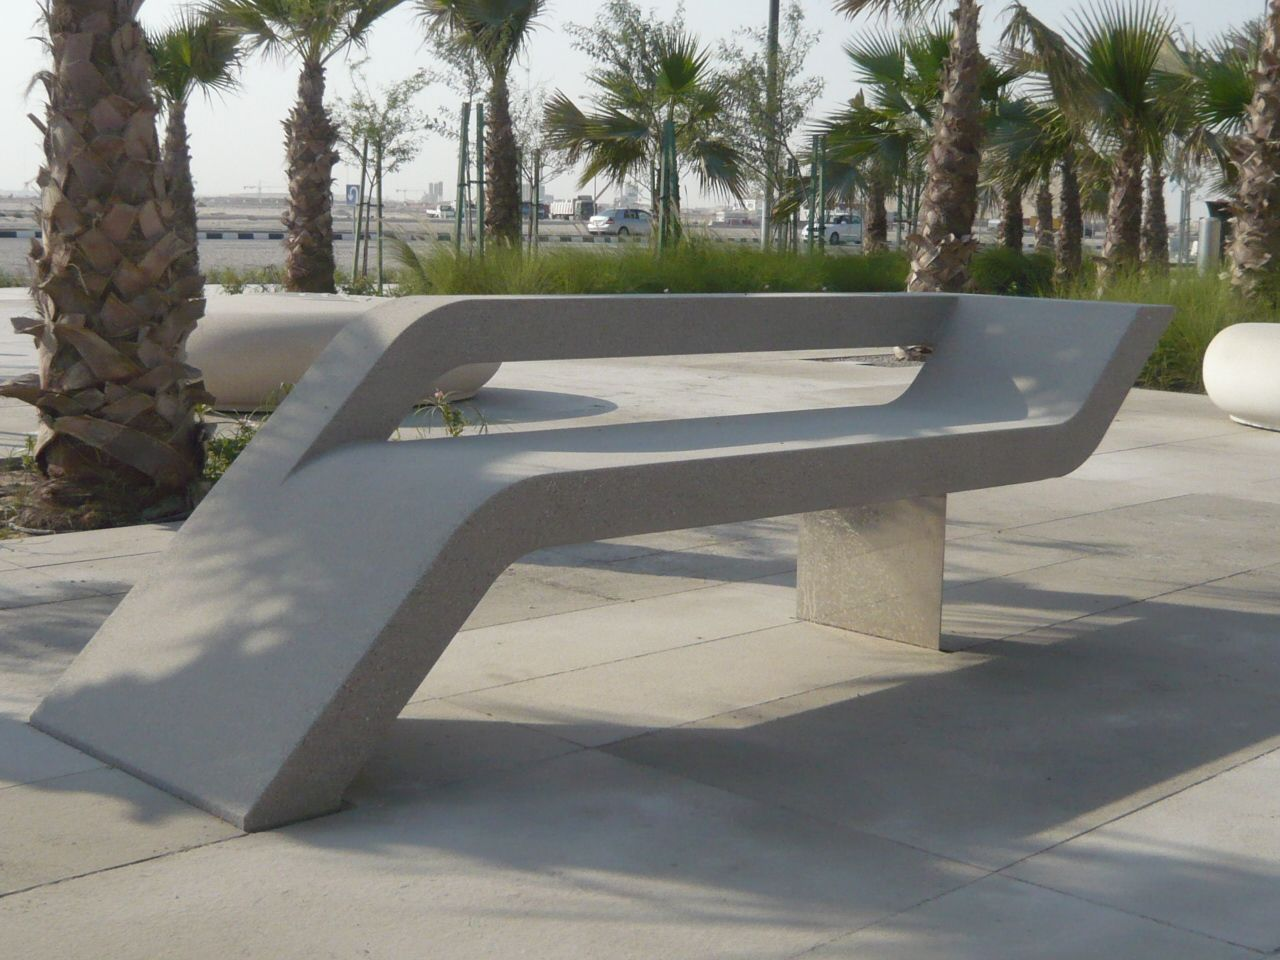 urban  design  furniture  bench. 103 best images about LA bench on Pinterest   Parks  Curved bench